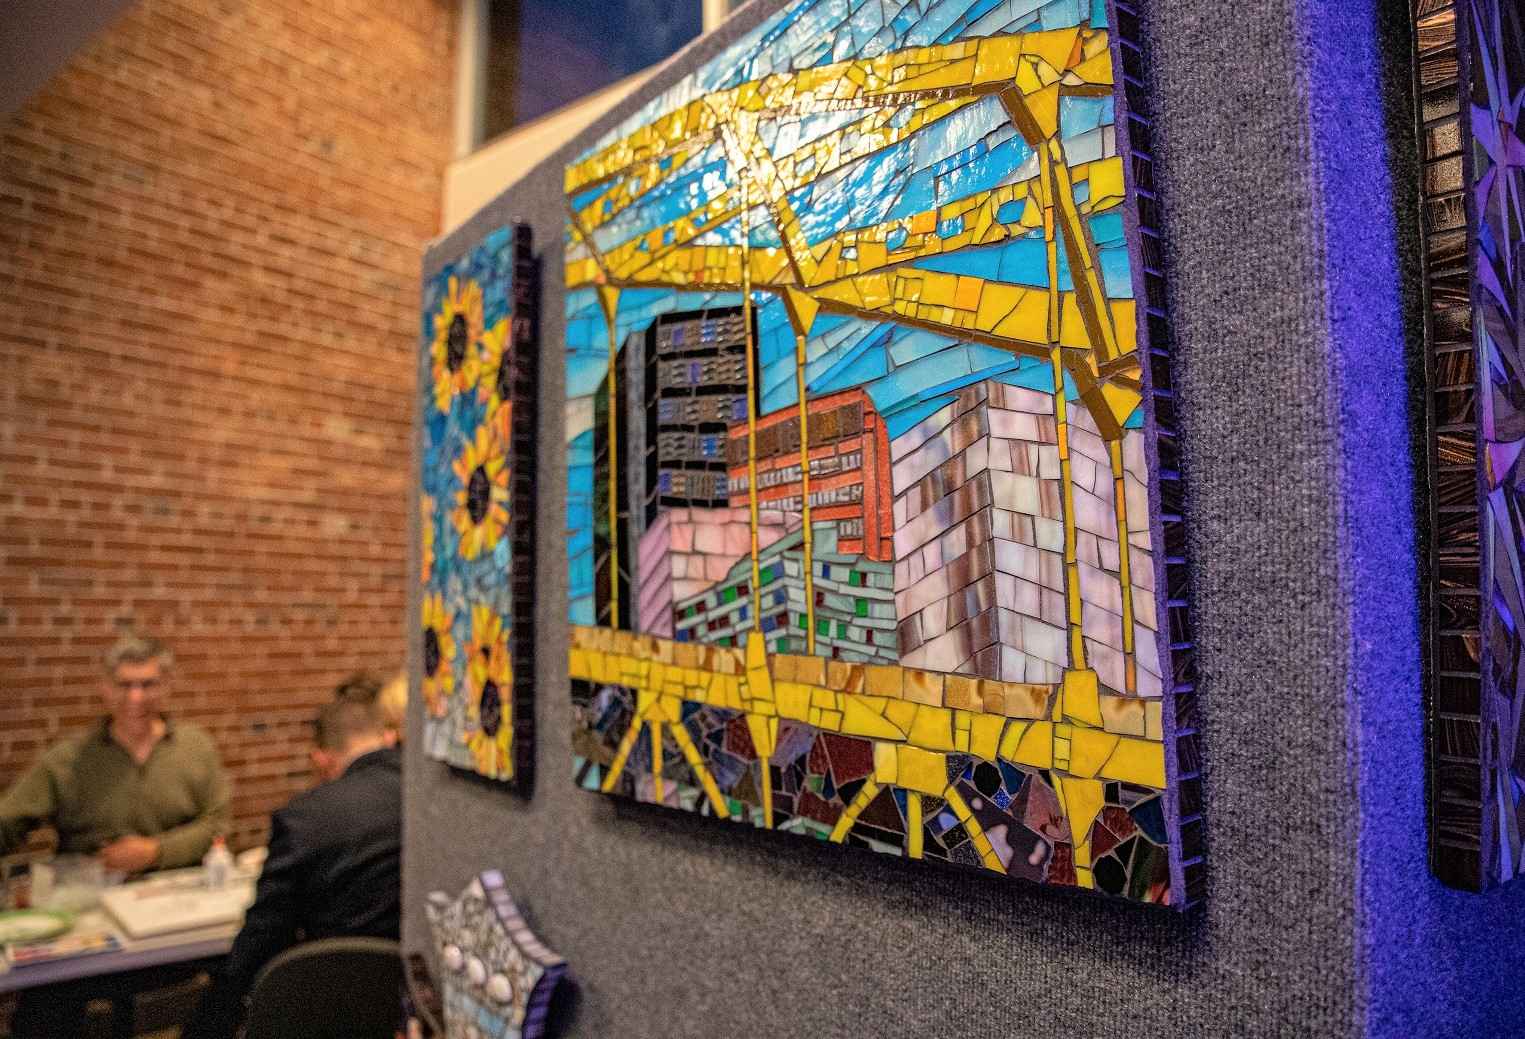 Glass mosaic art hanging on wall